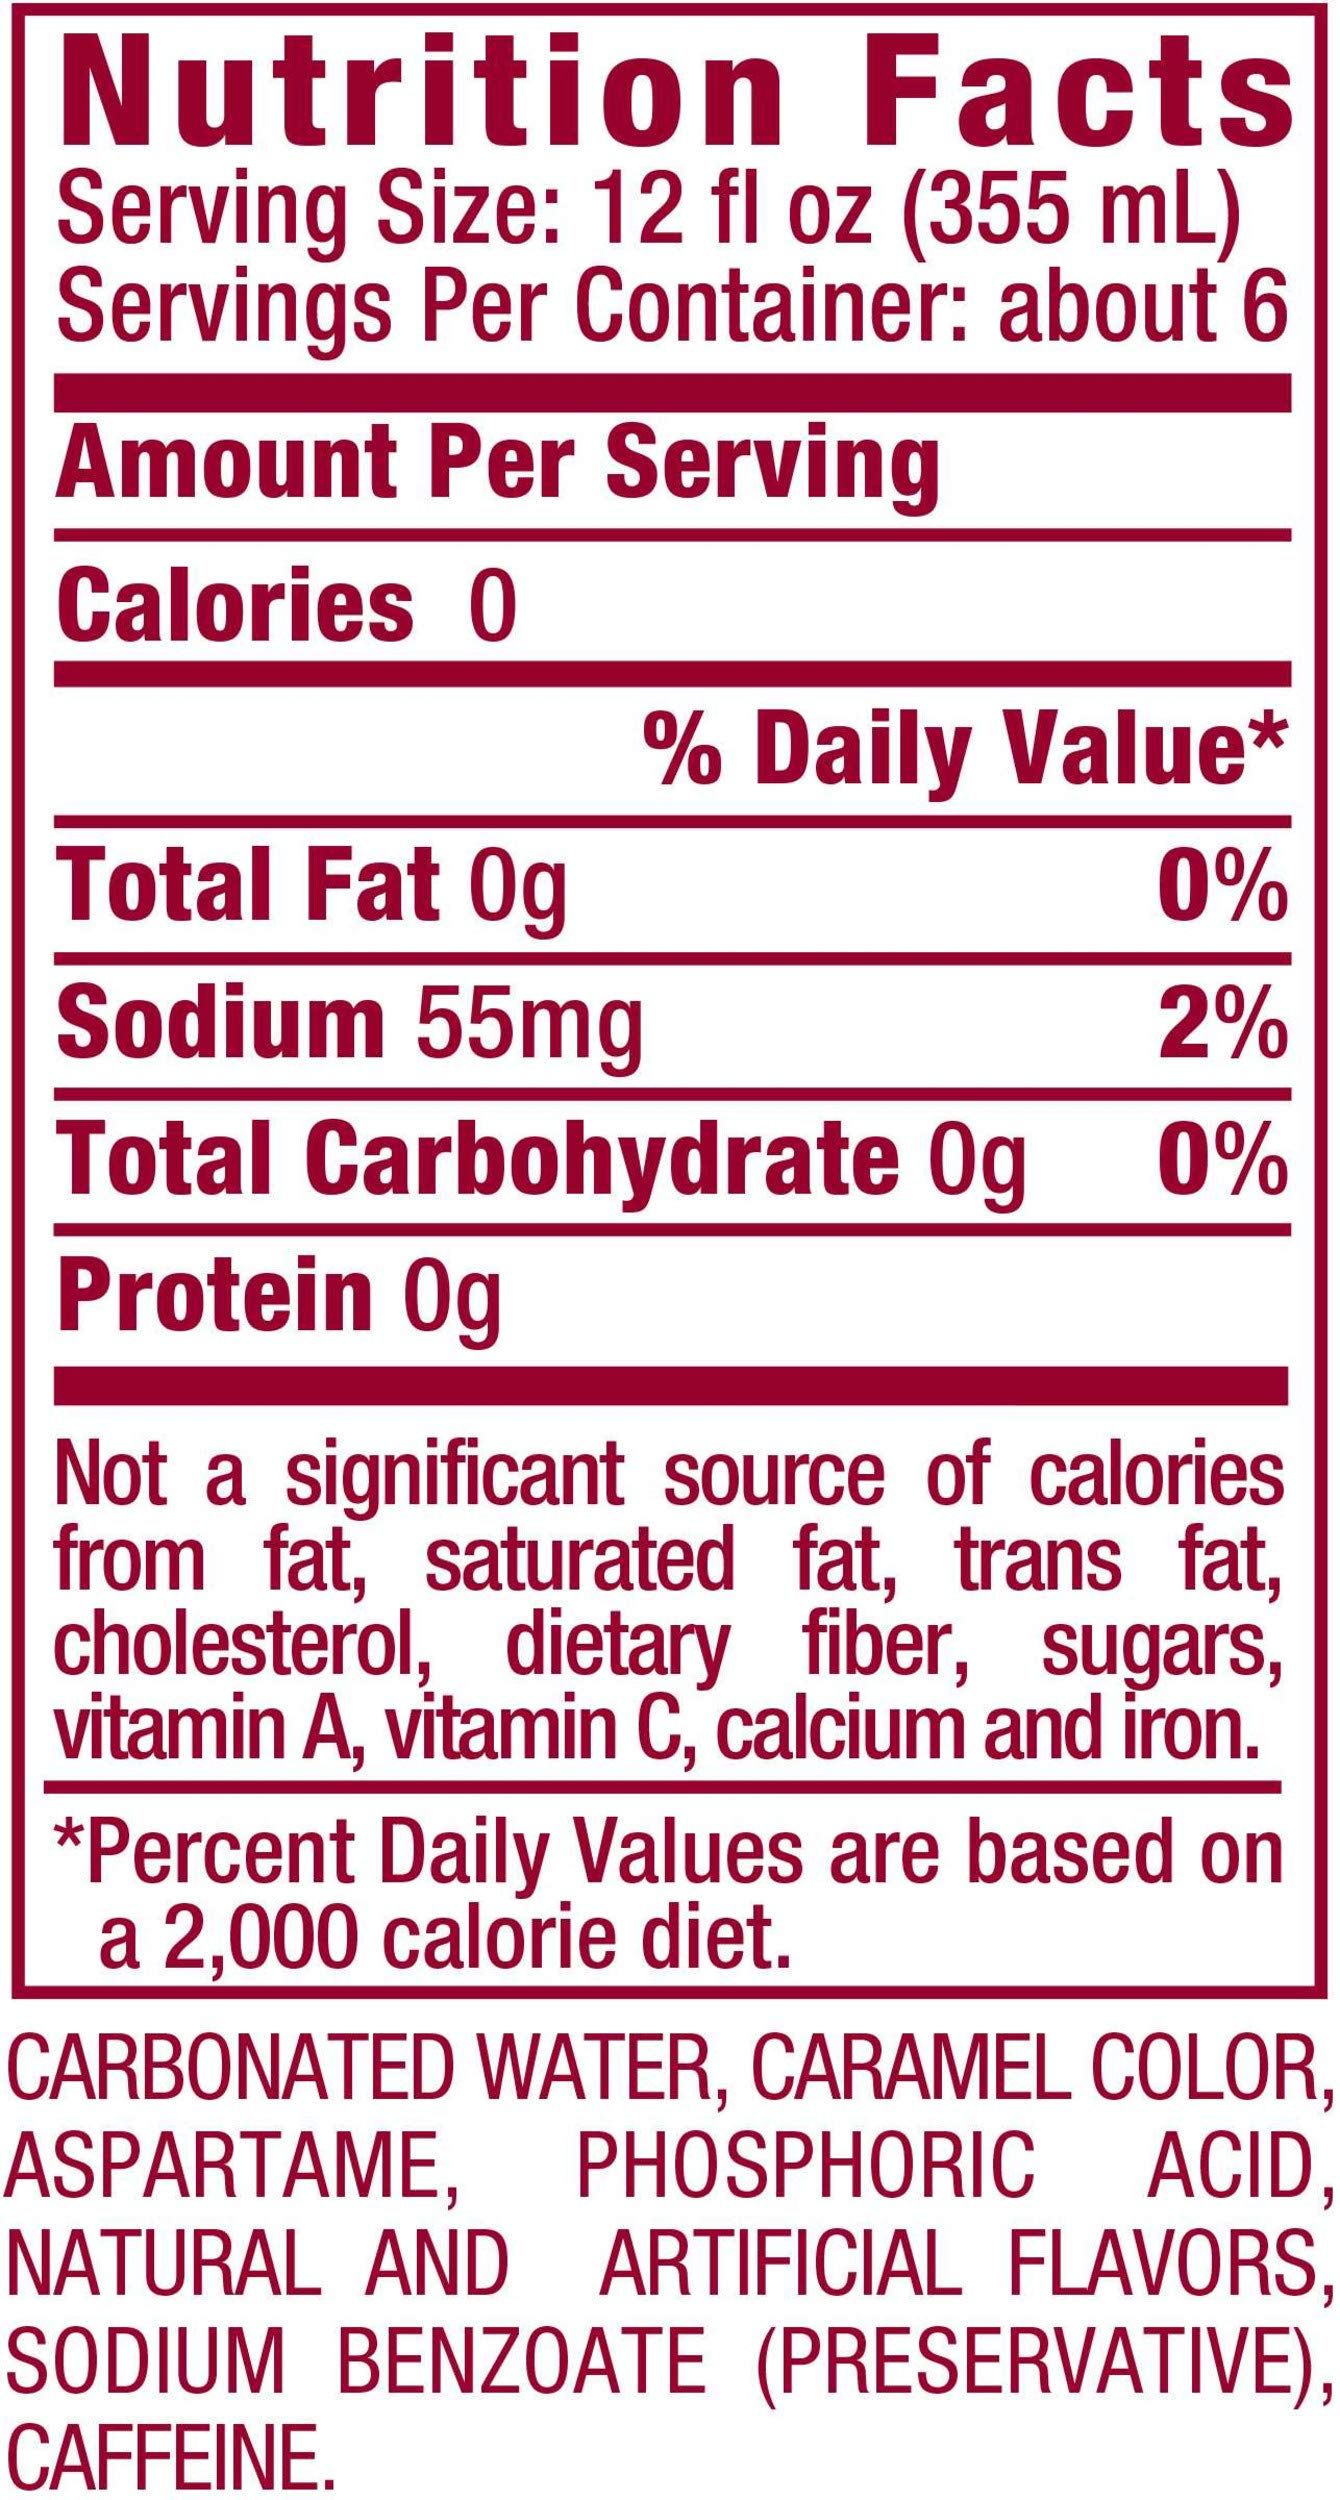 WHAT IS THE SUGAR IN DIET DR PEPPER